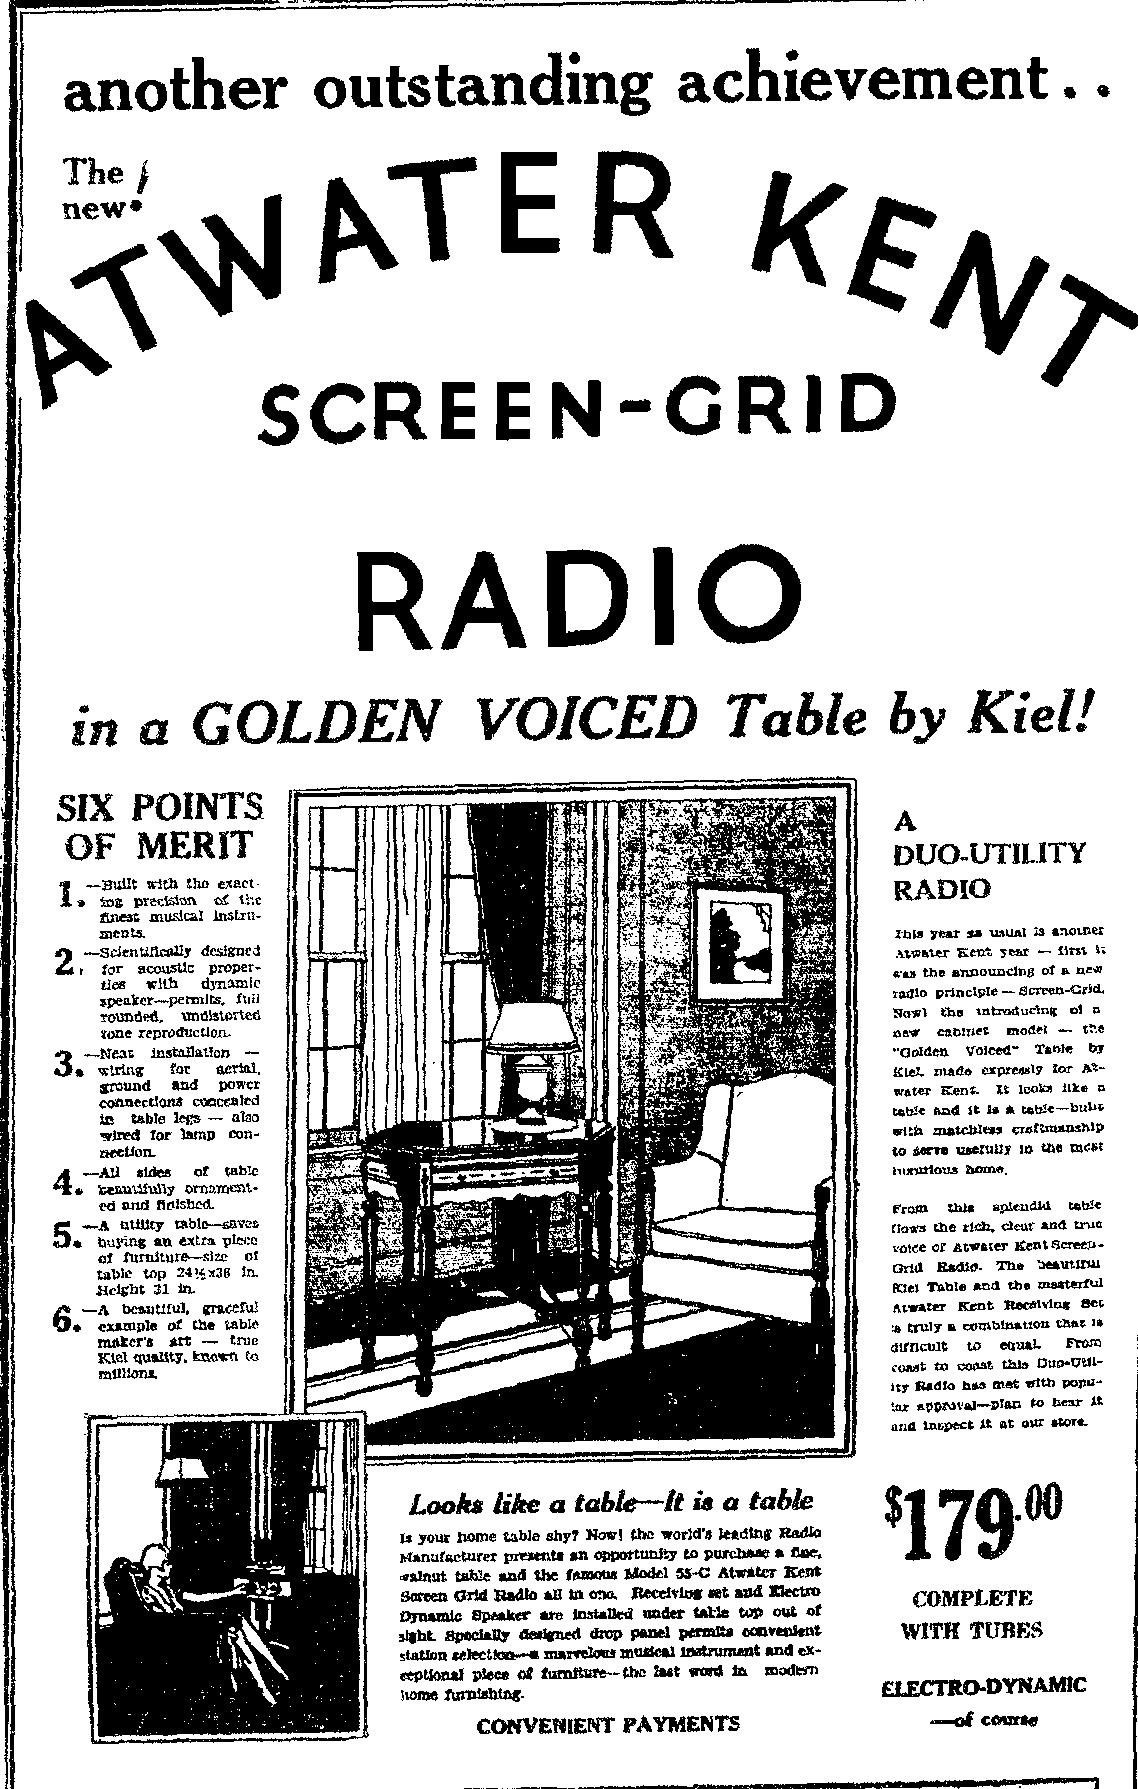 atwater kent model 55c radio in kiel table 1929